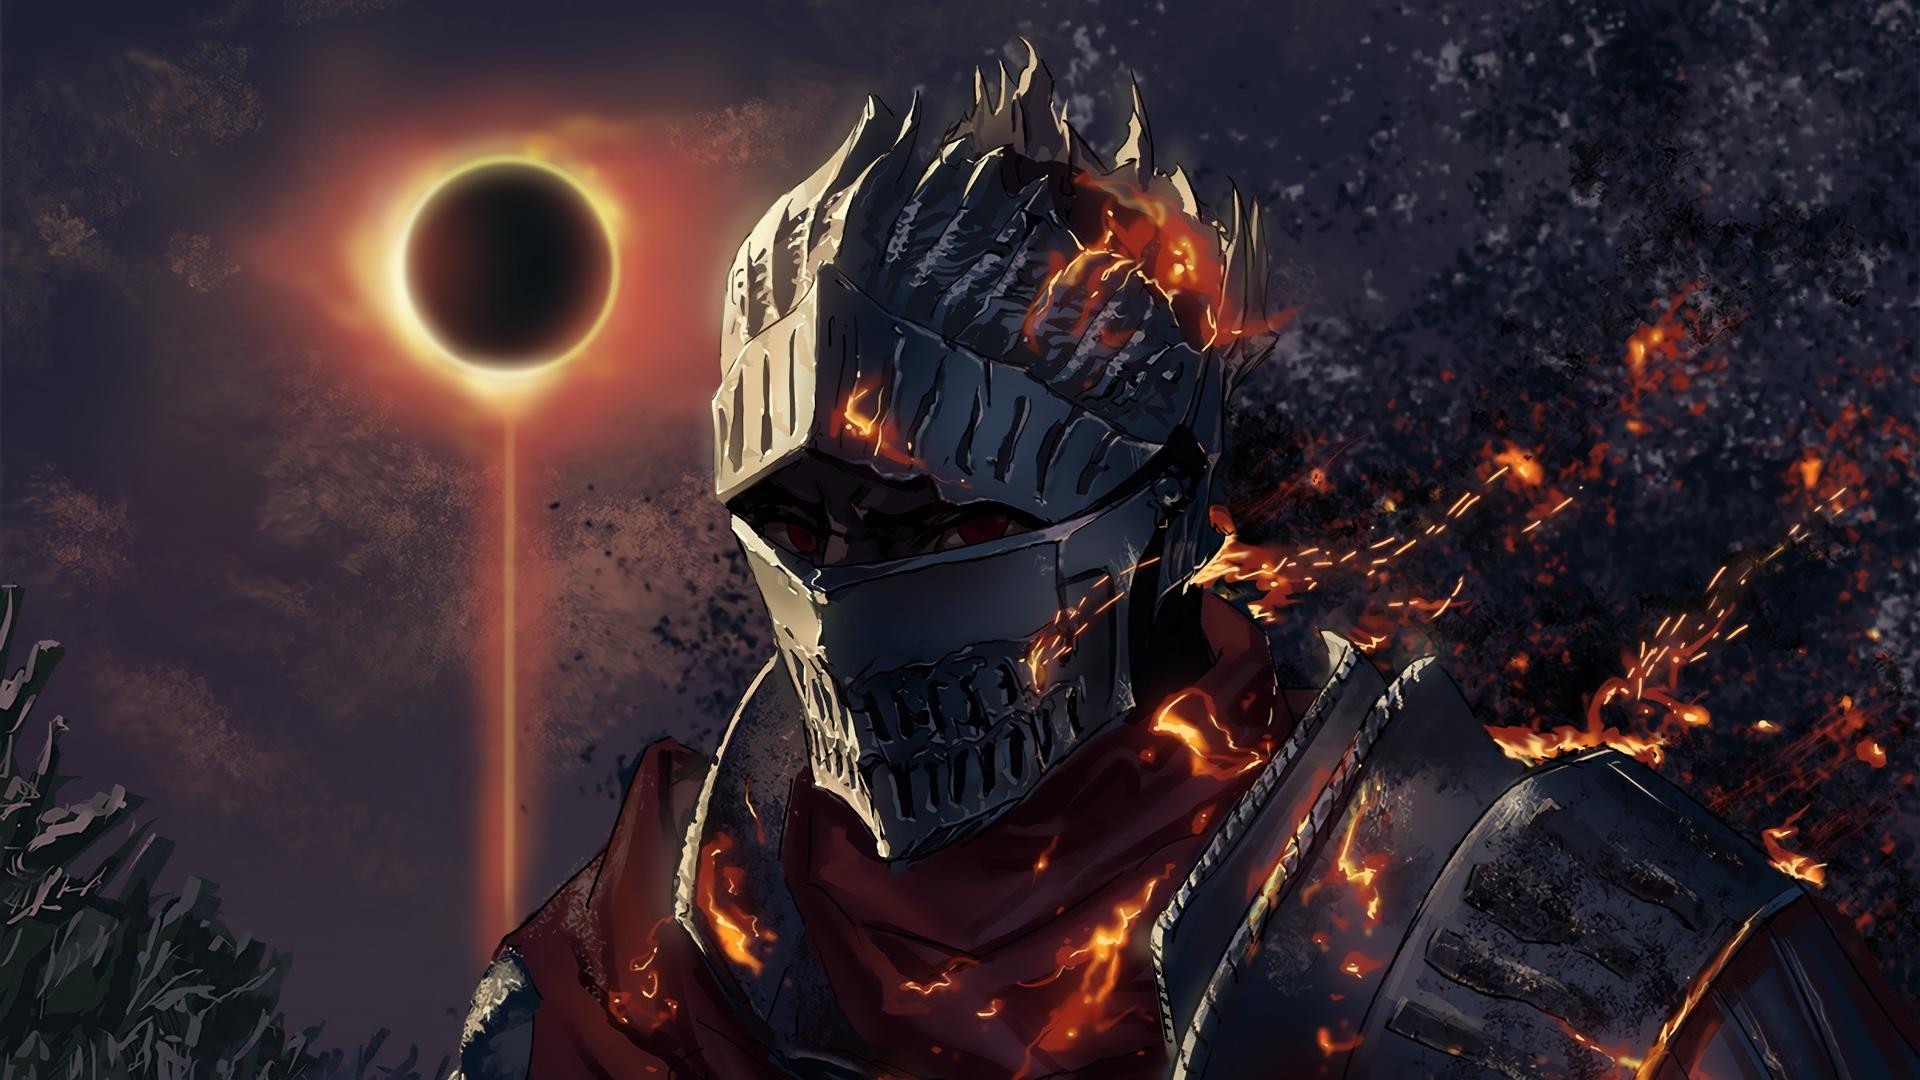 Dark Souls Hd Wallpaper Posted By Christopher Mercado